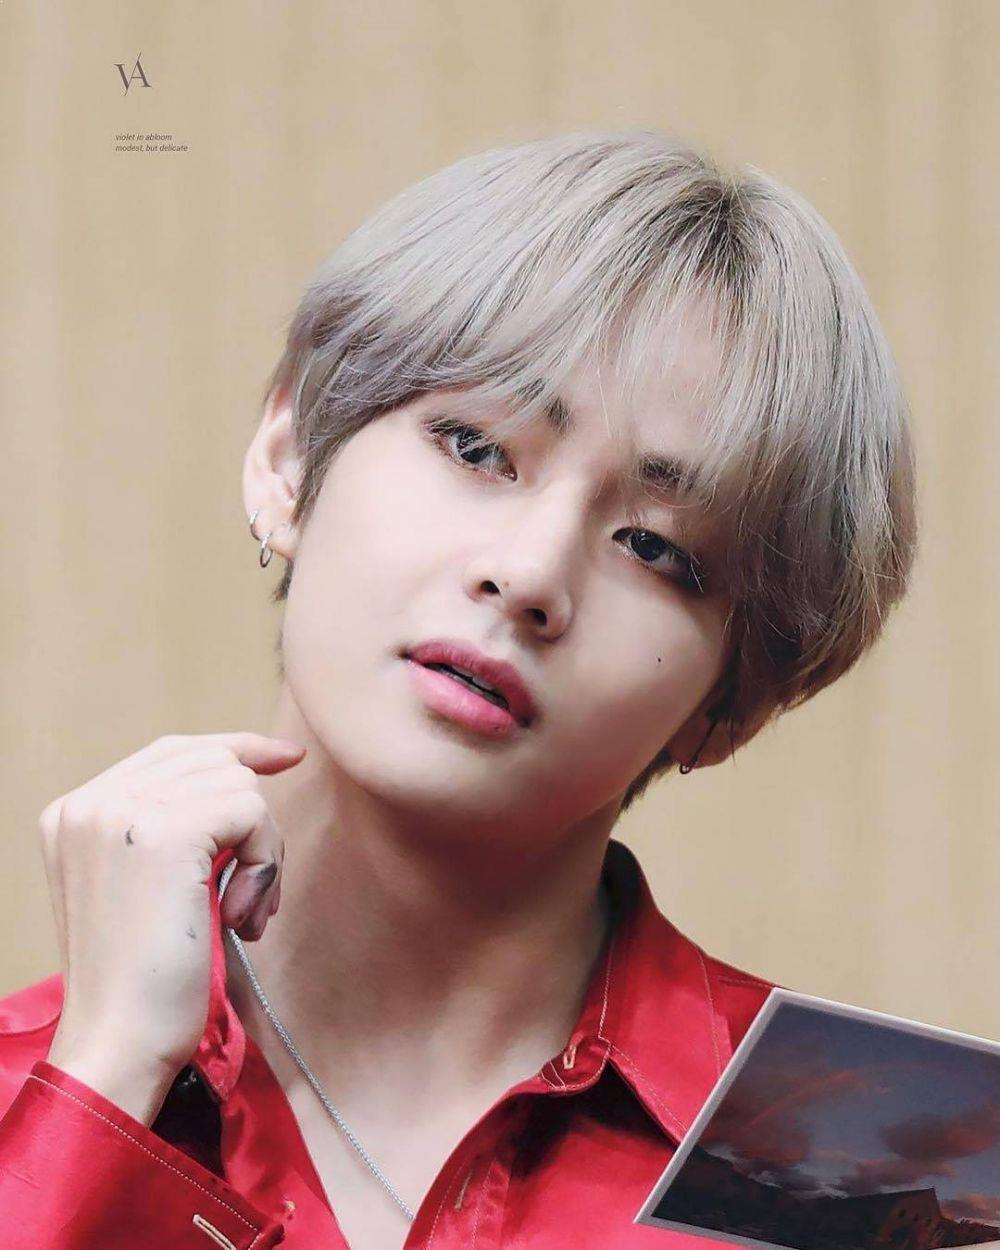 Bts V Is The Most Handsome Man Of 2018 Chingu To The World